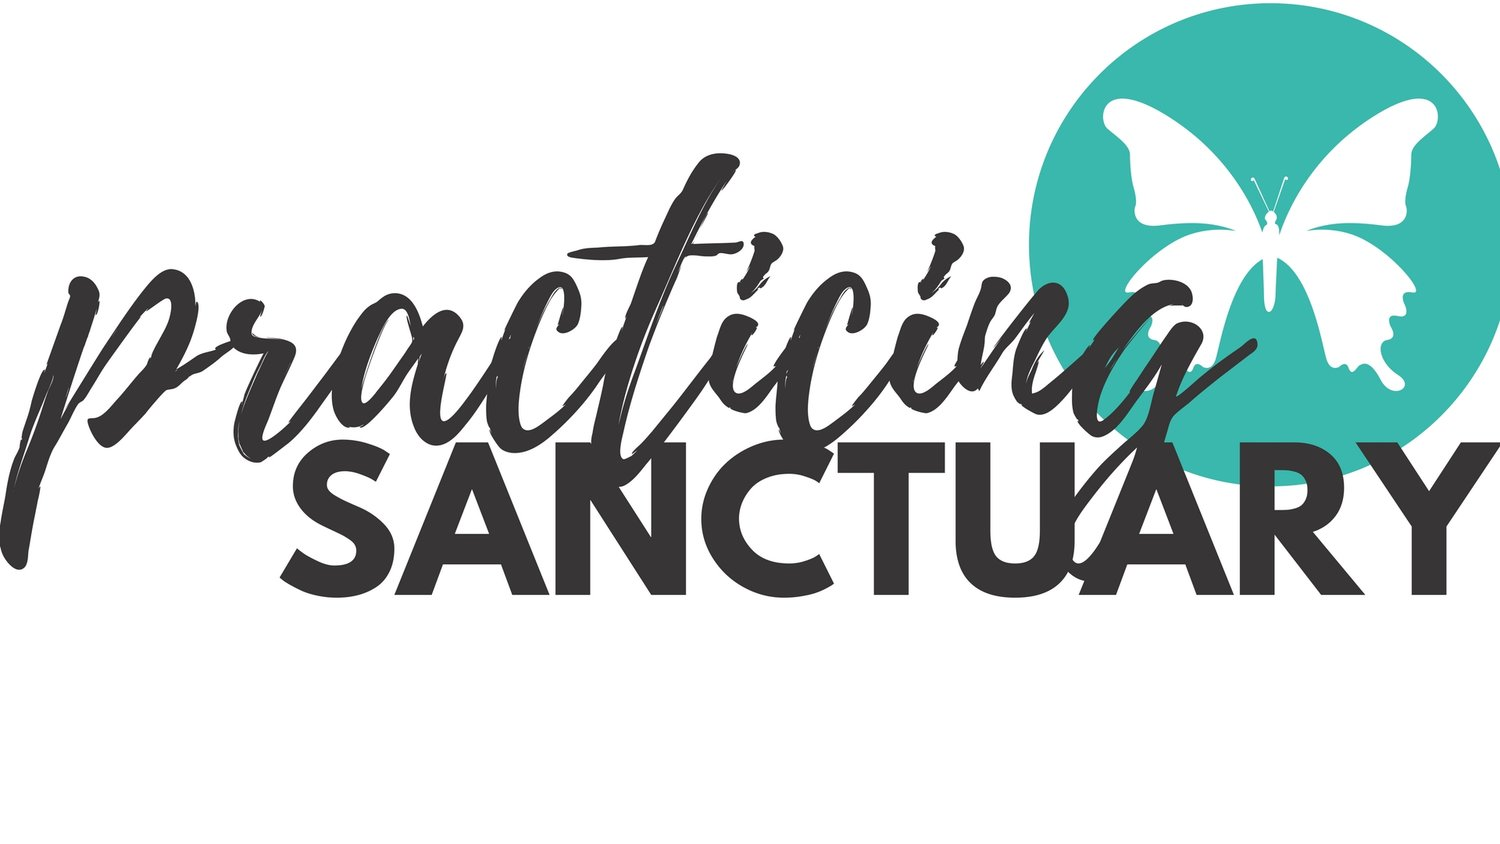 Practicing Sanctuary